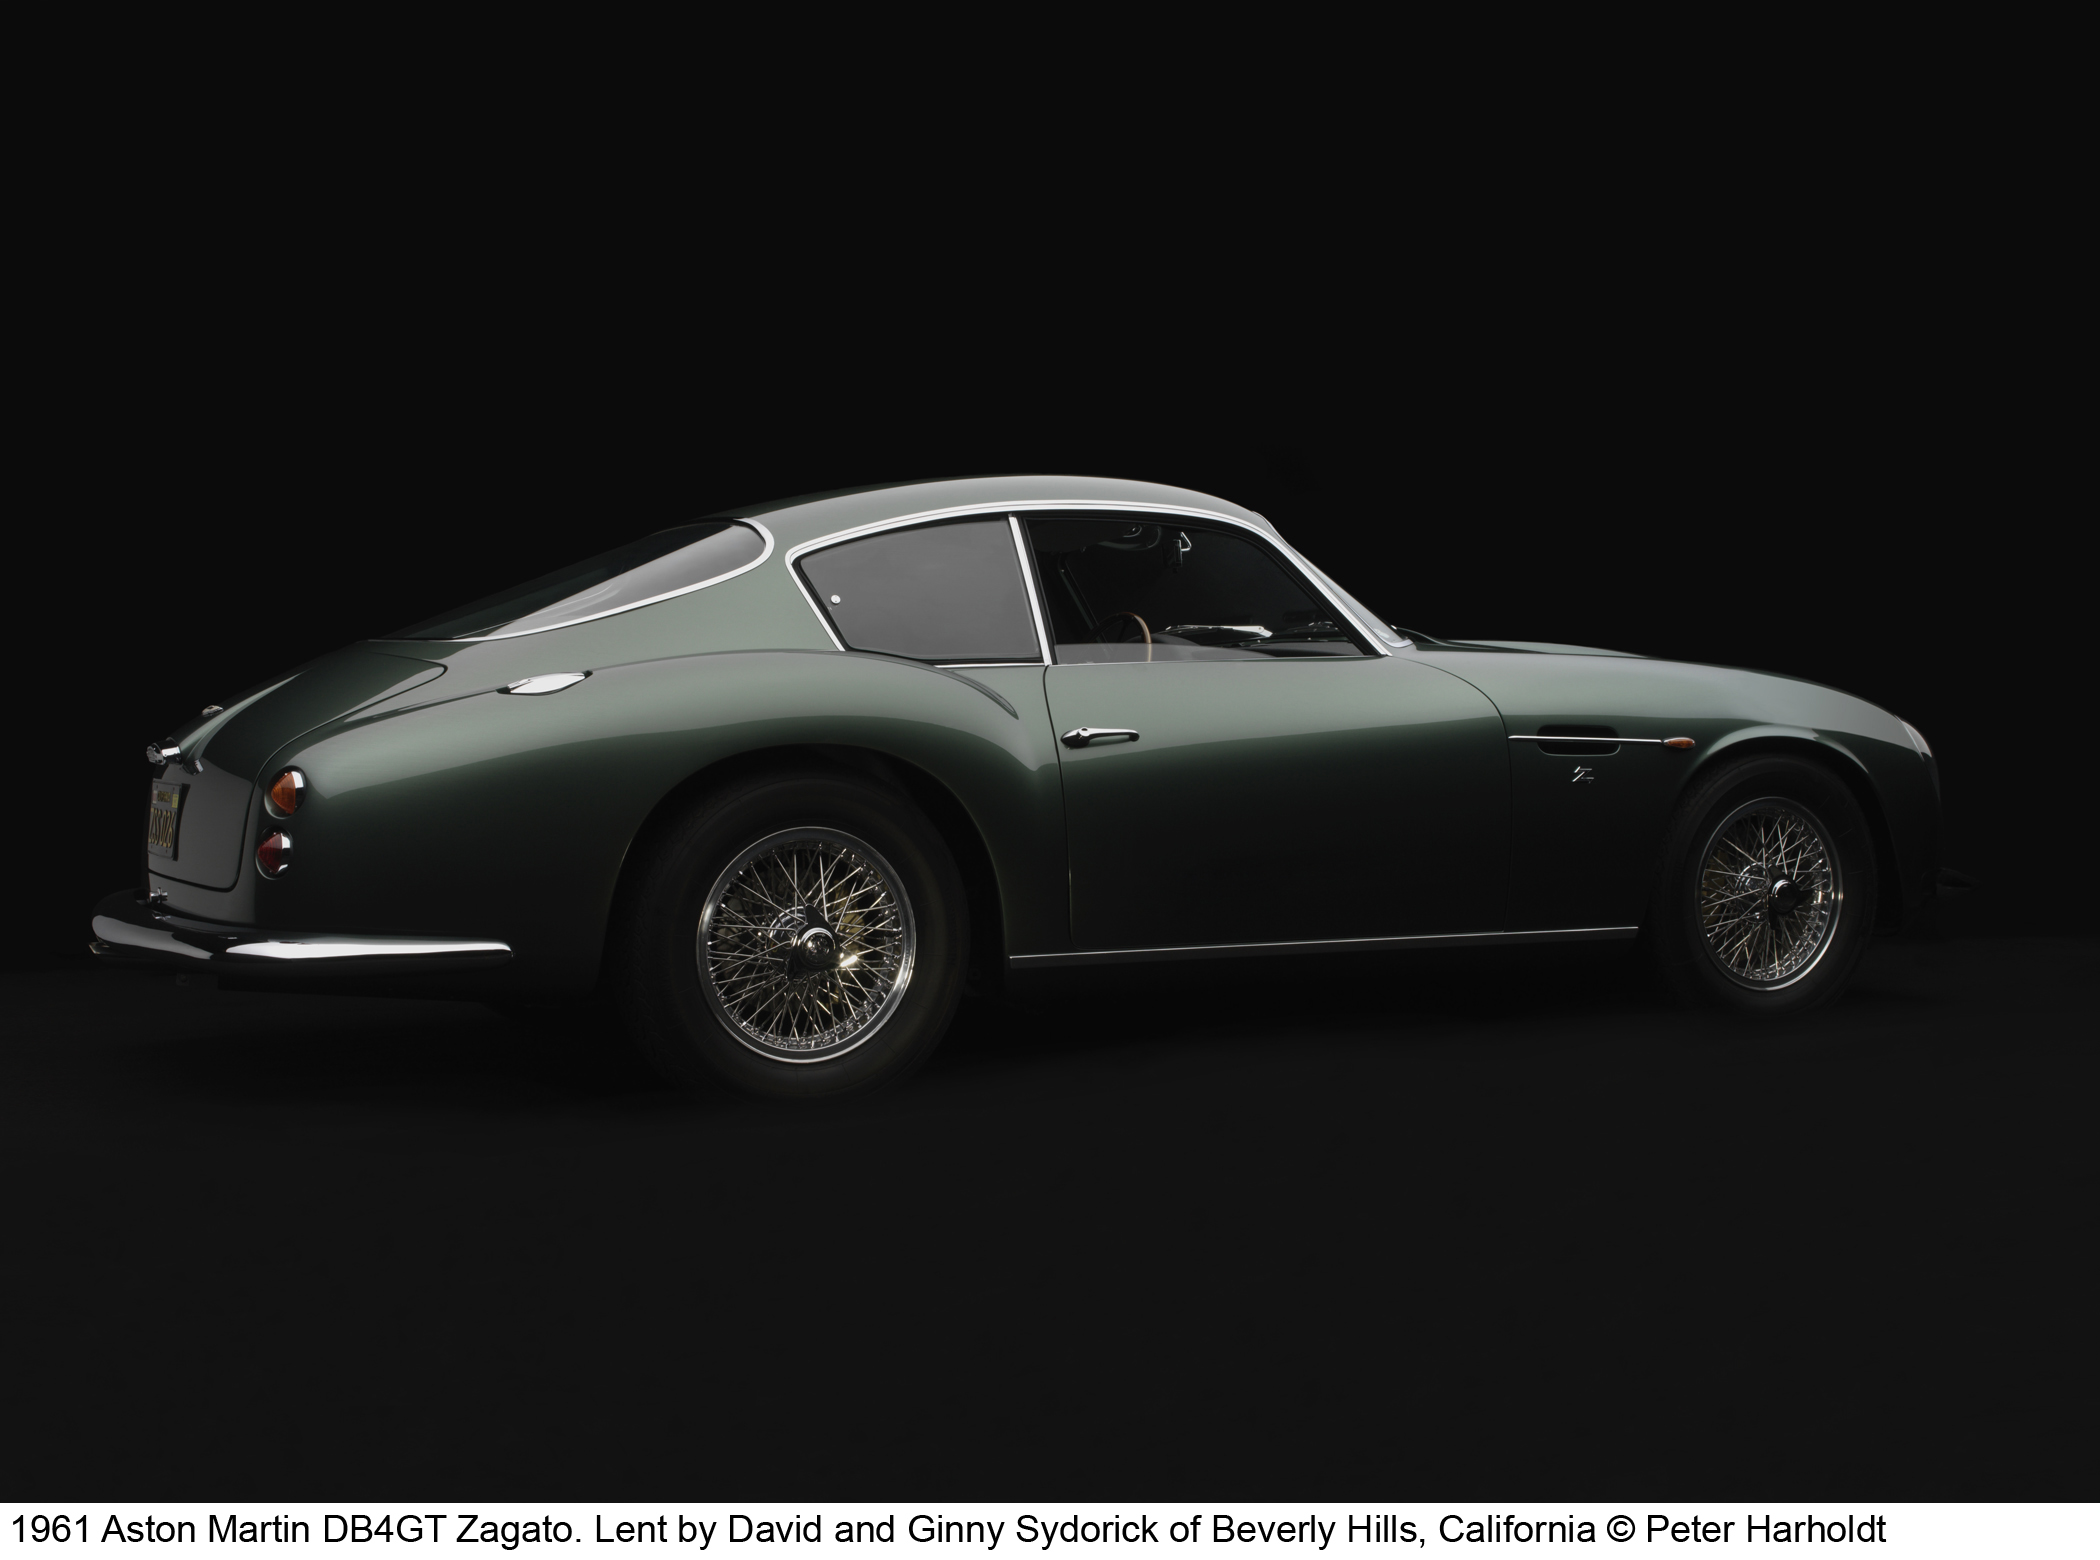 961 Aston Martin DB4GT Zagato